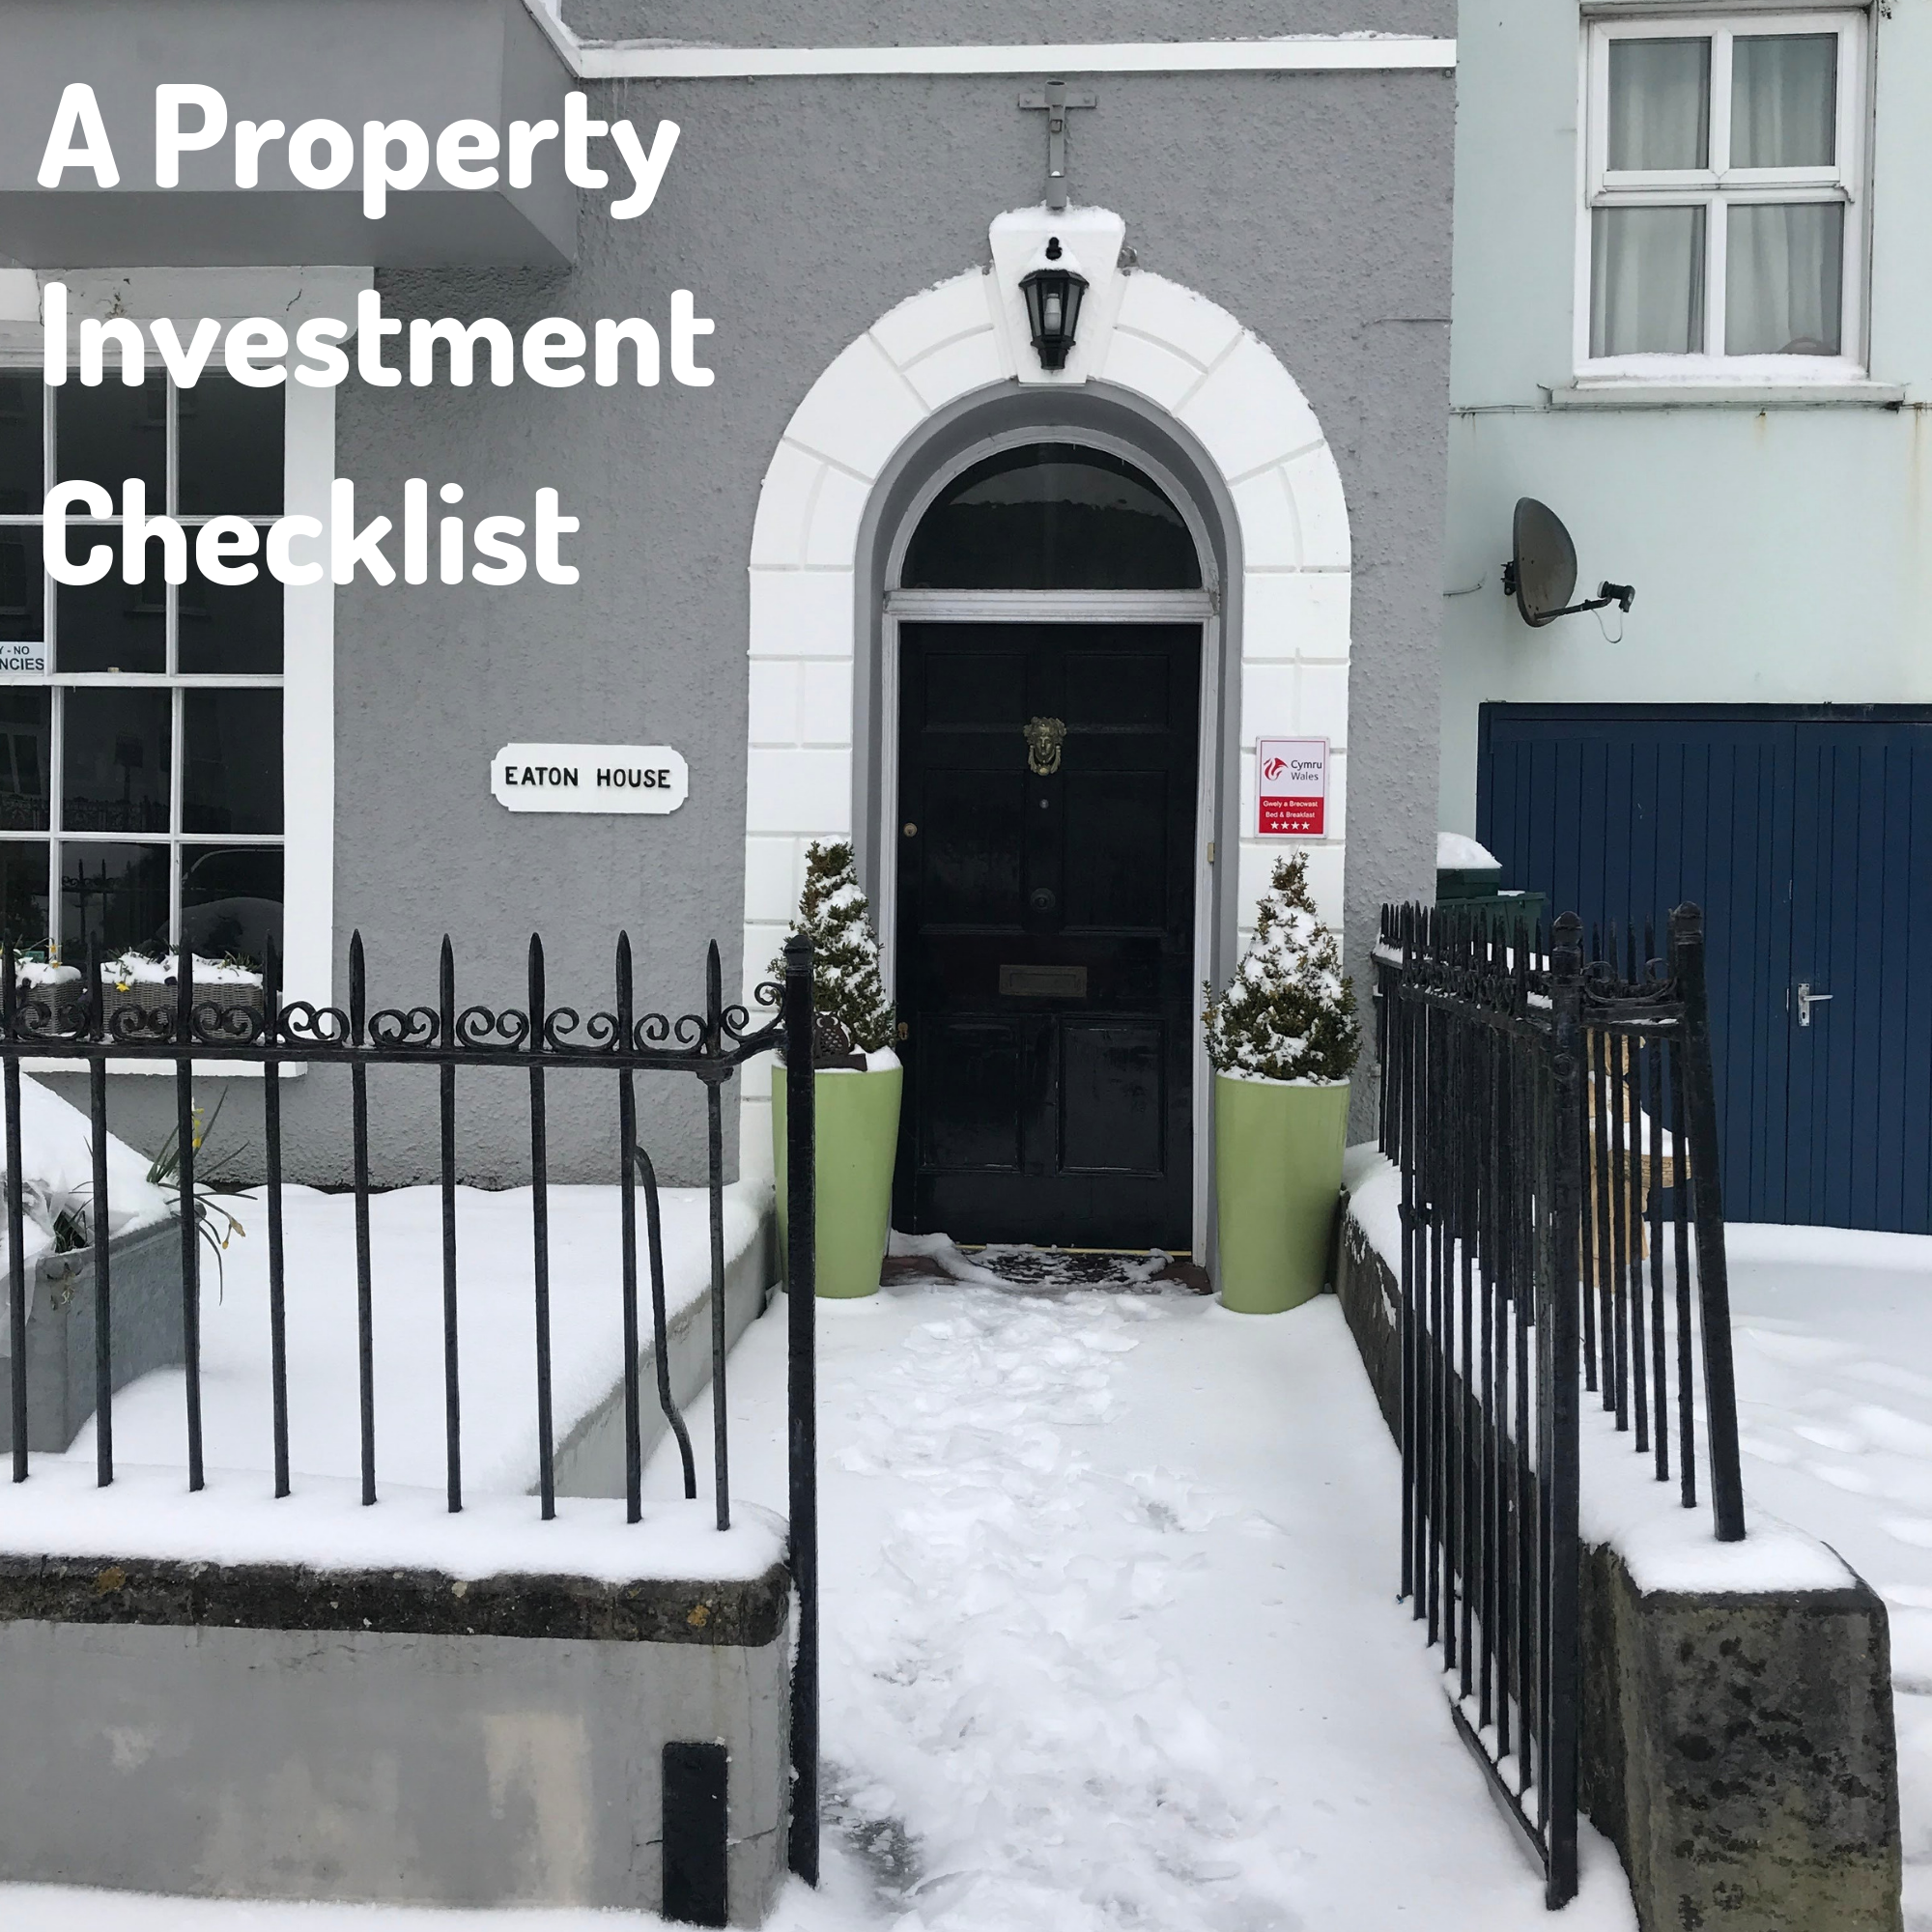 A Property Investment Checklist